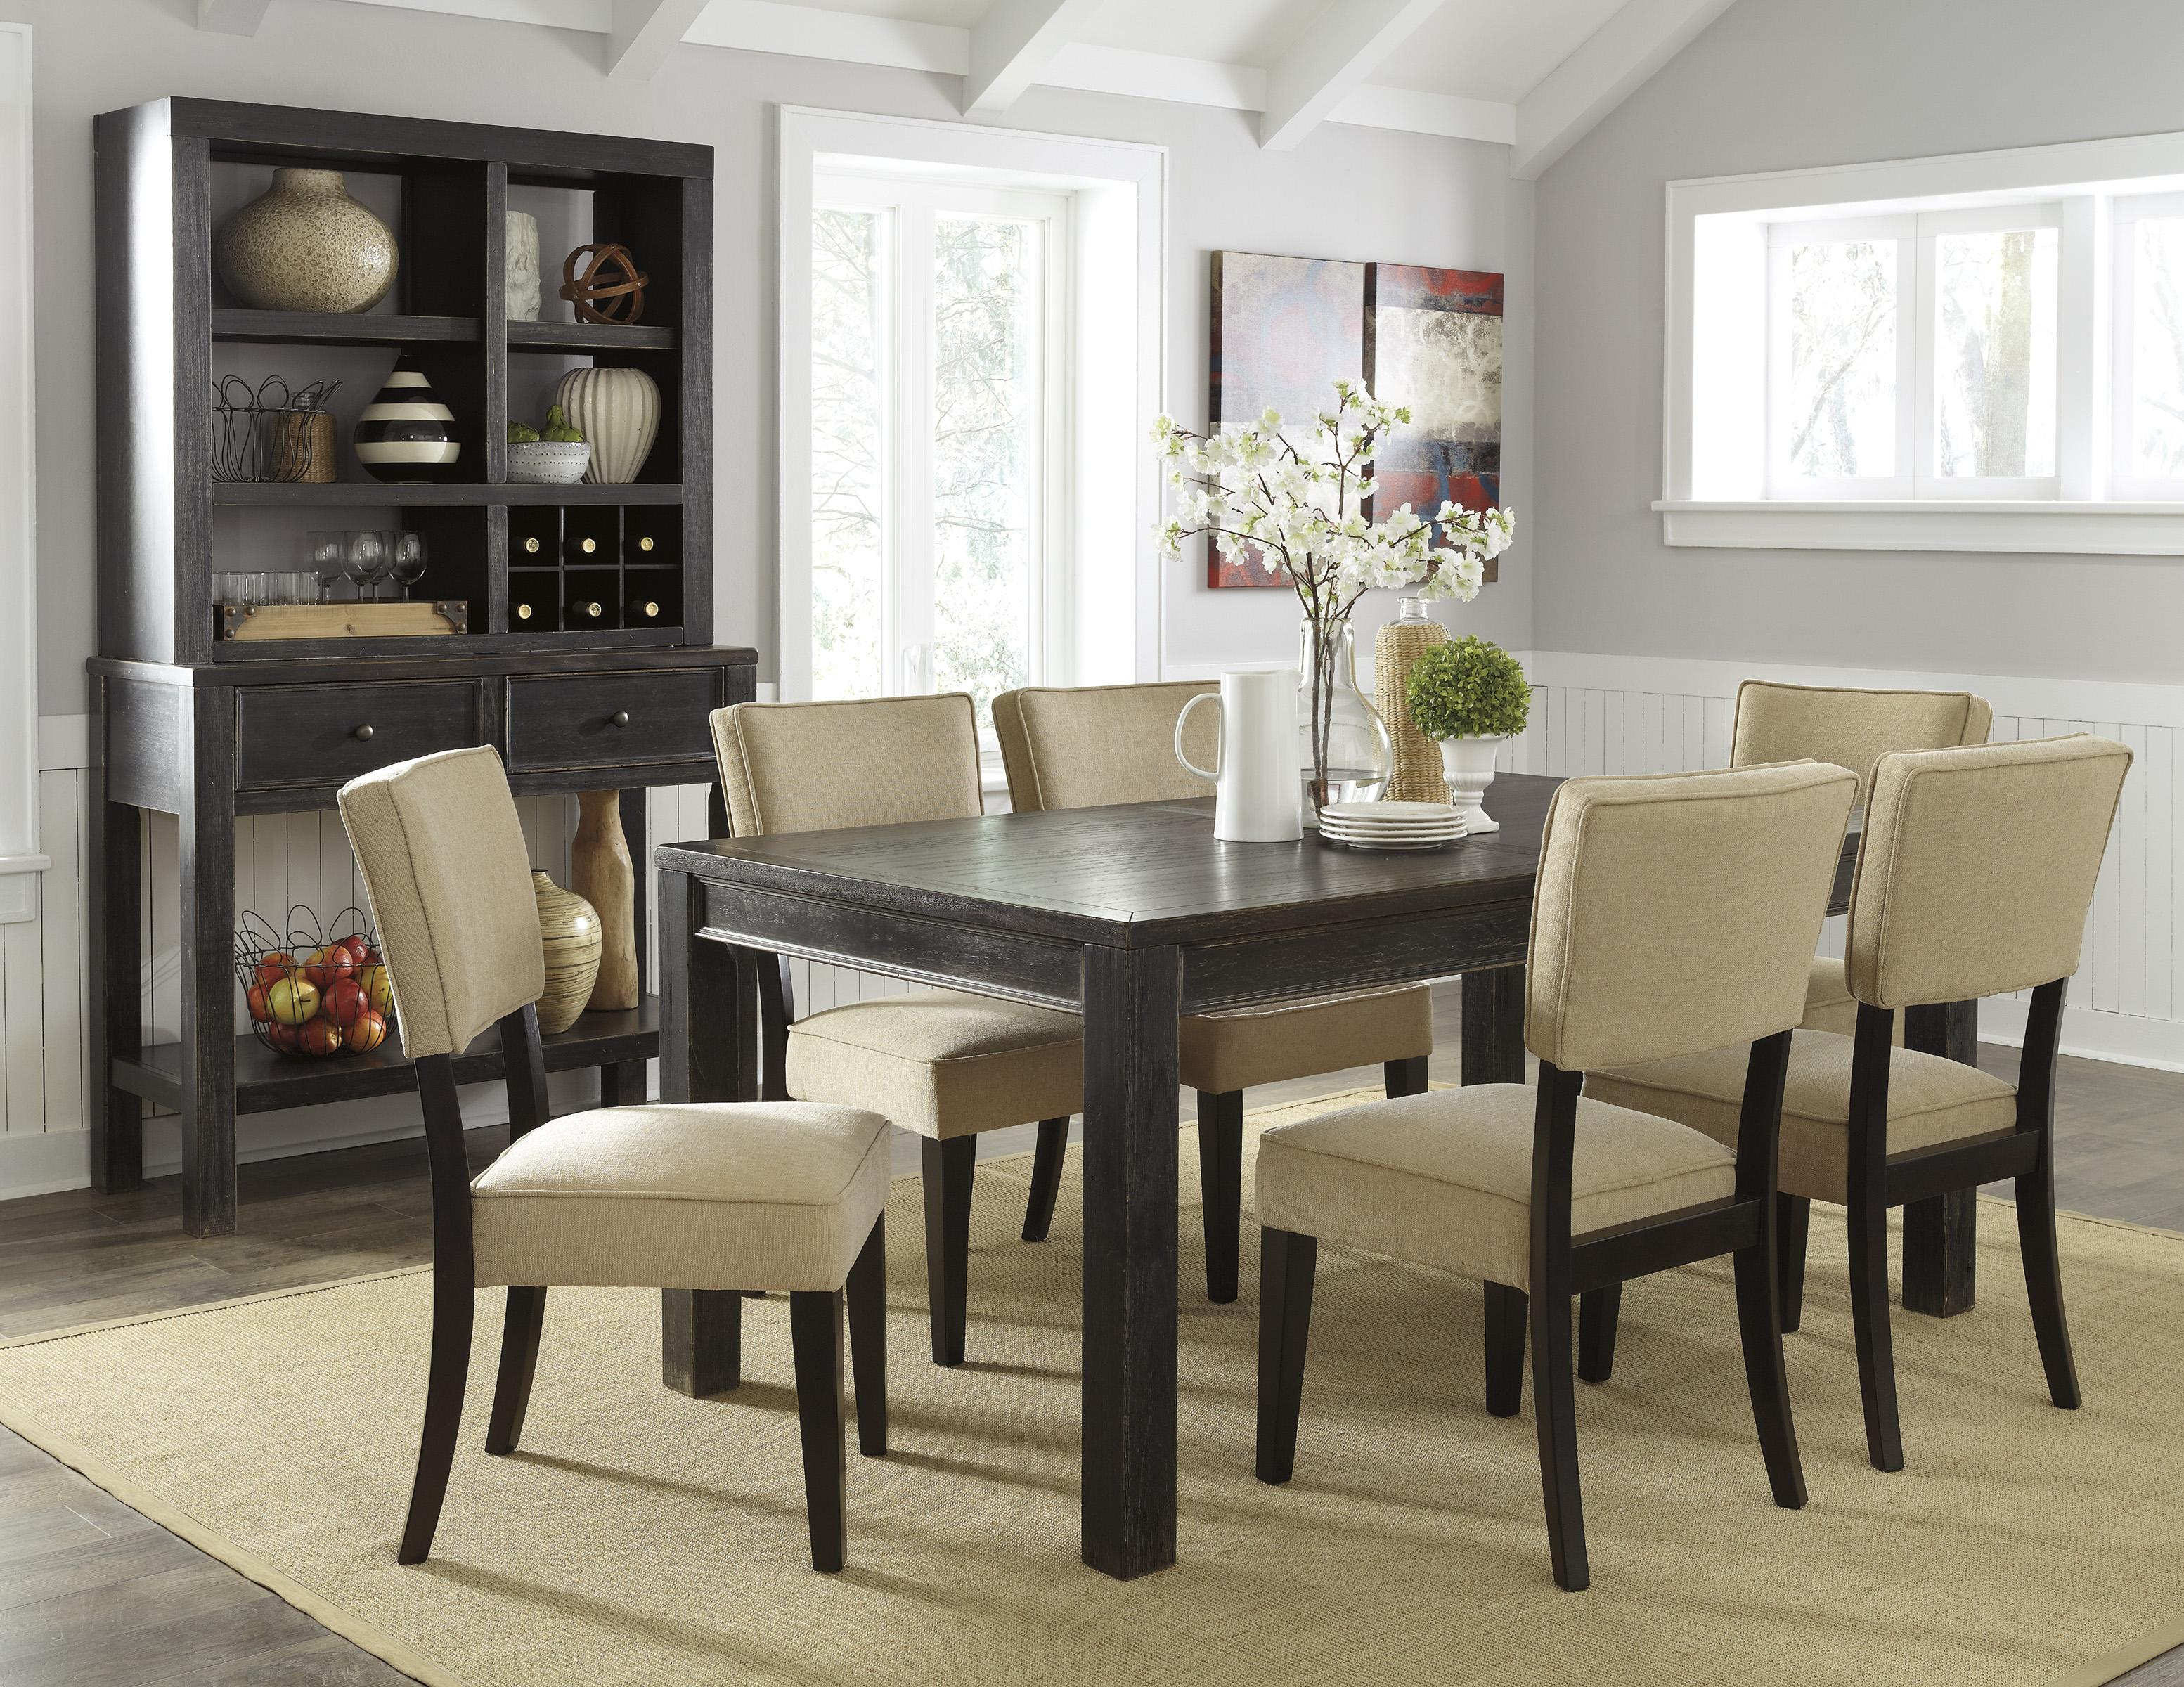 Signature Design by Ashley Gavelston Casual Dining Room Group - Item Number: D532 Dining Room Group 11